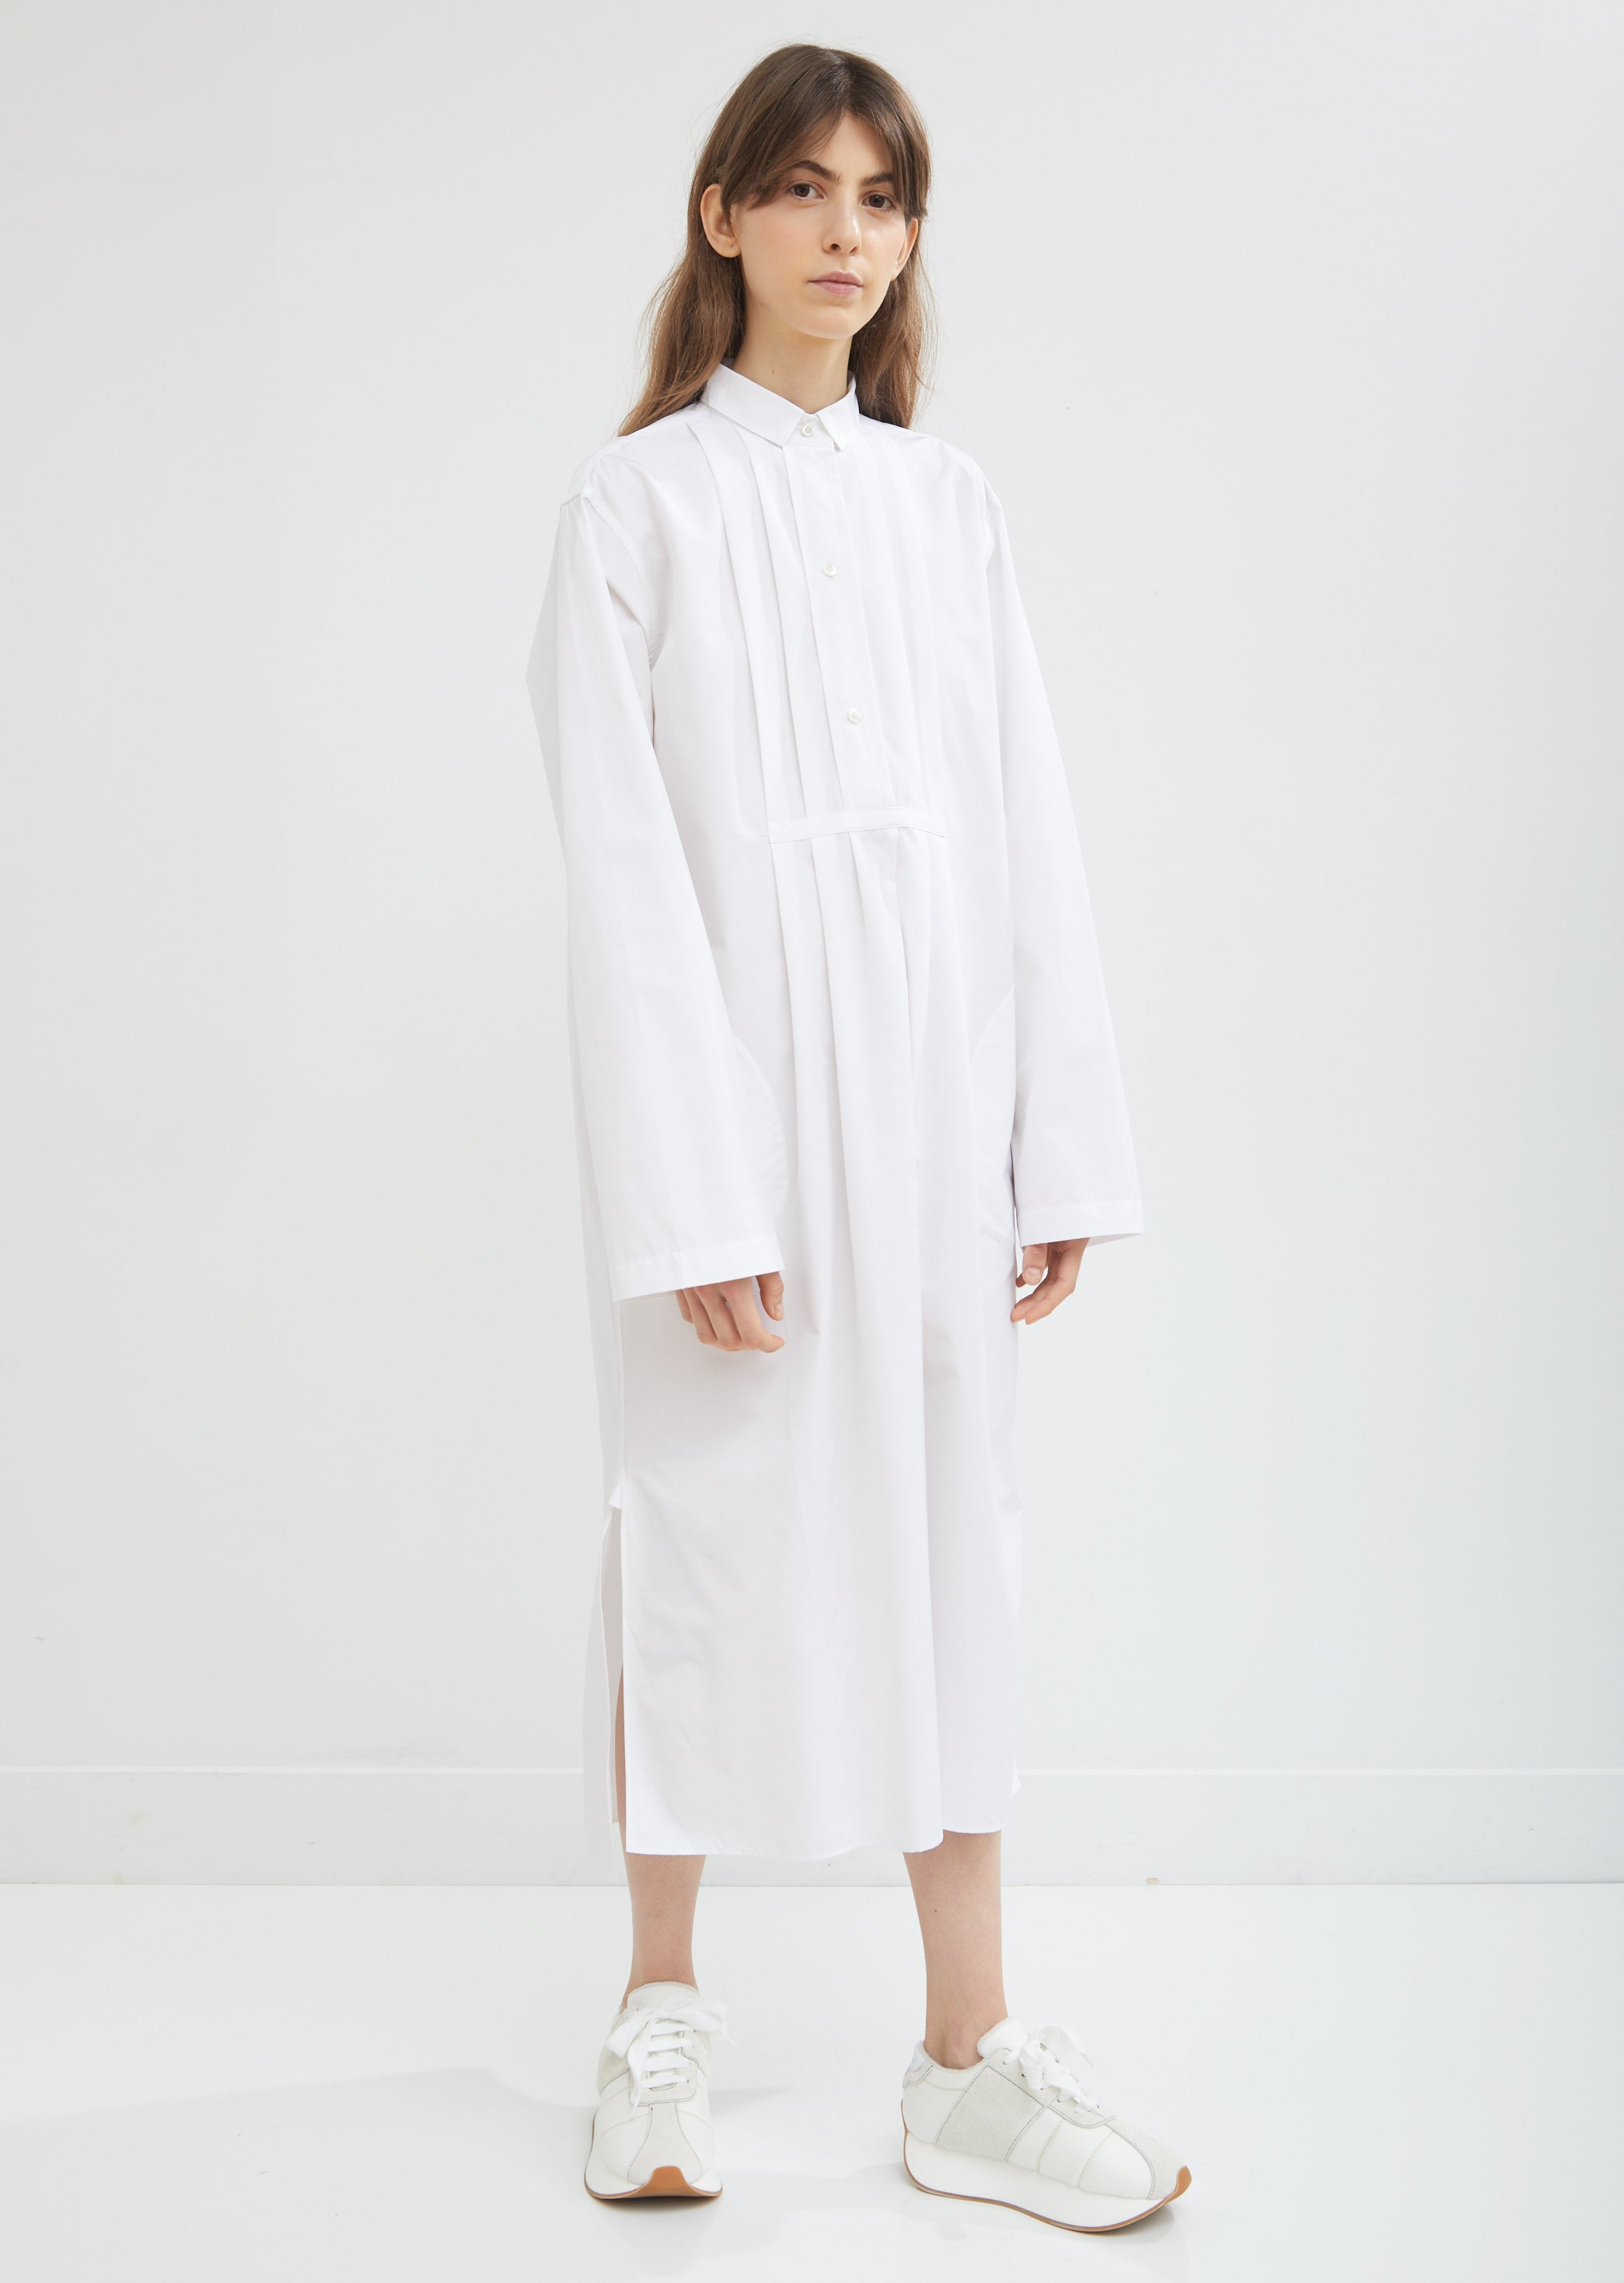 Dael Pleated Cotton Poplin Shirt Dress By Sofie Dhoore La Garonne